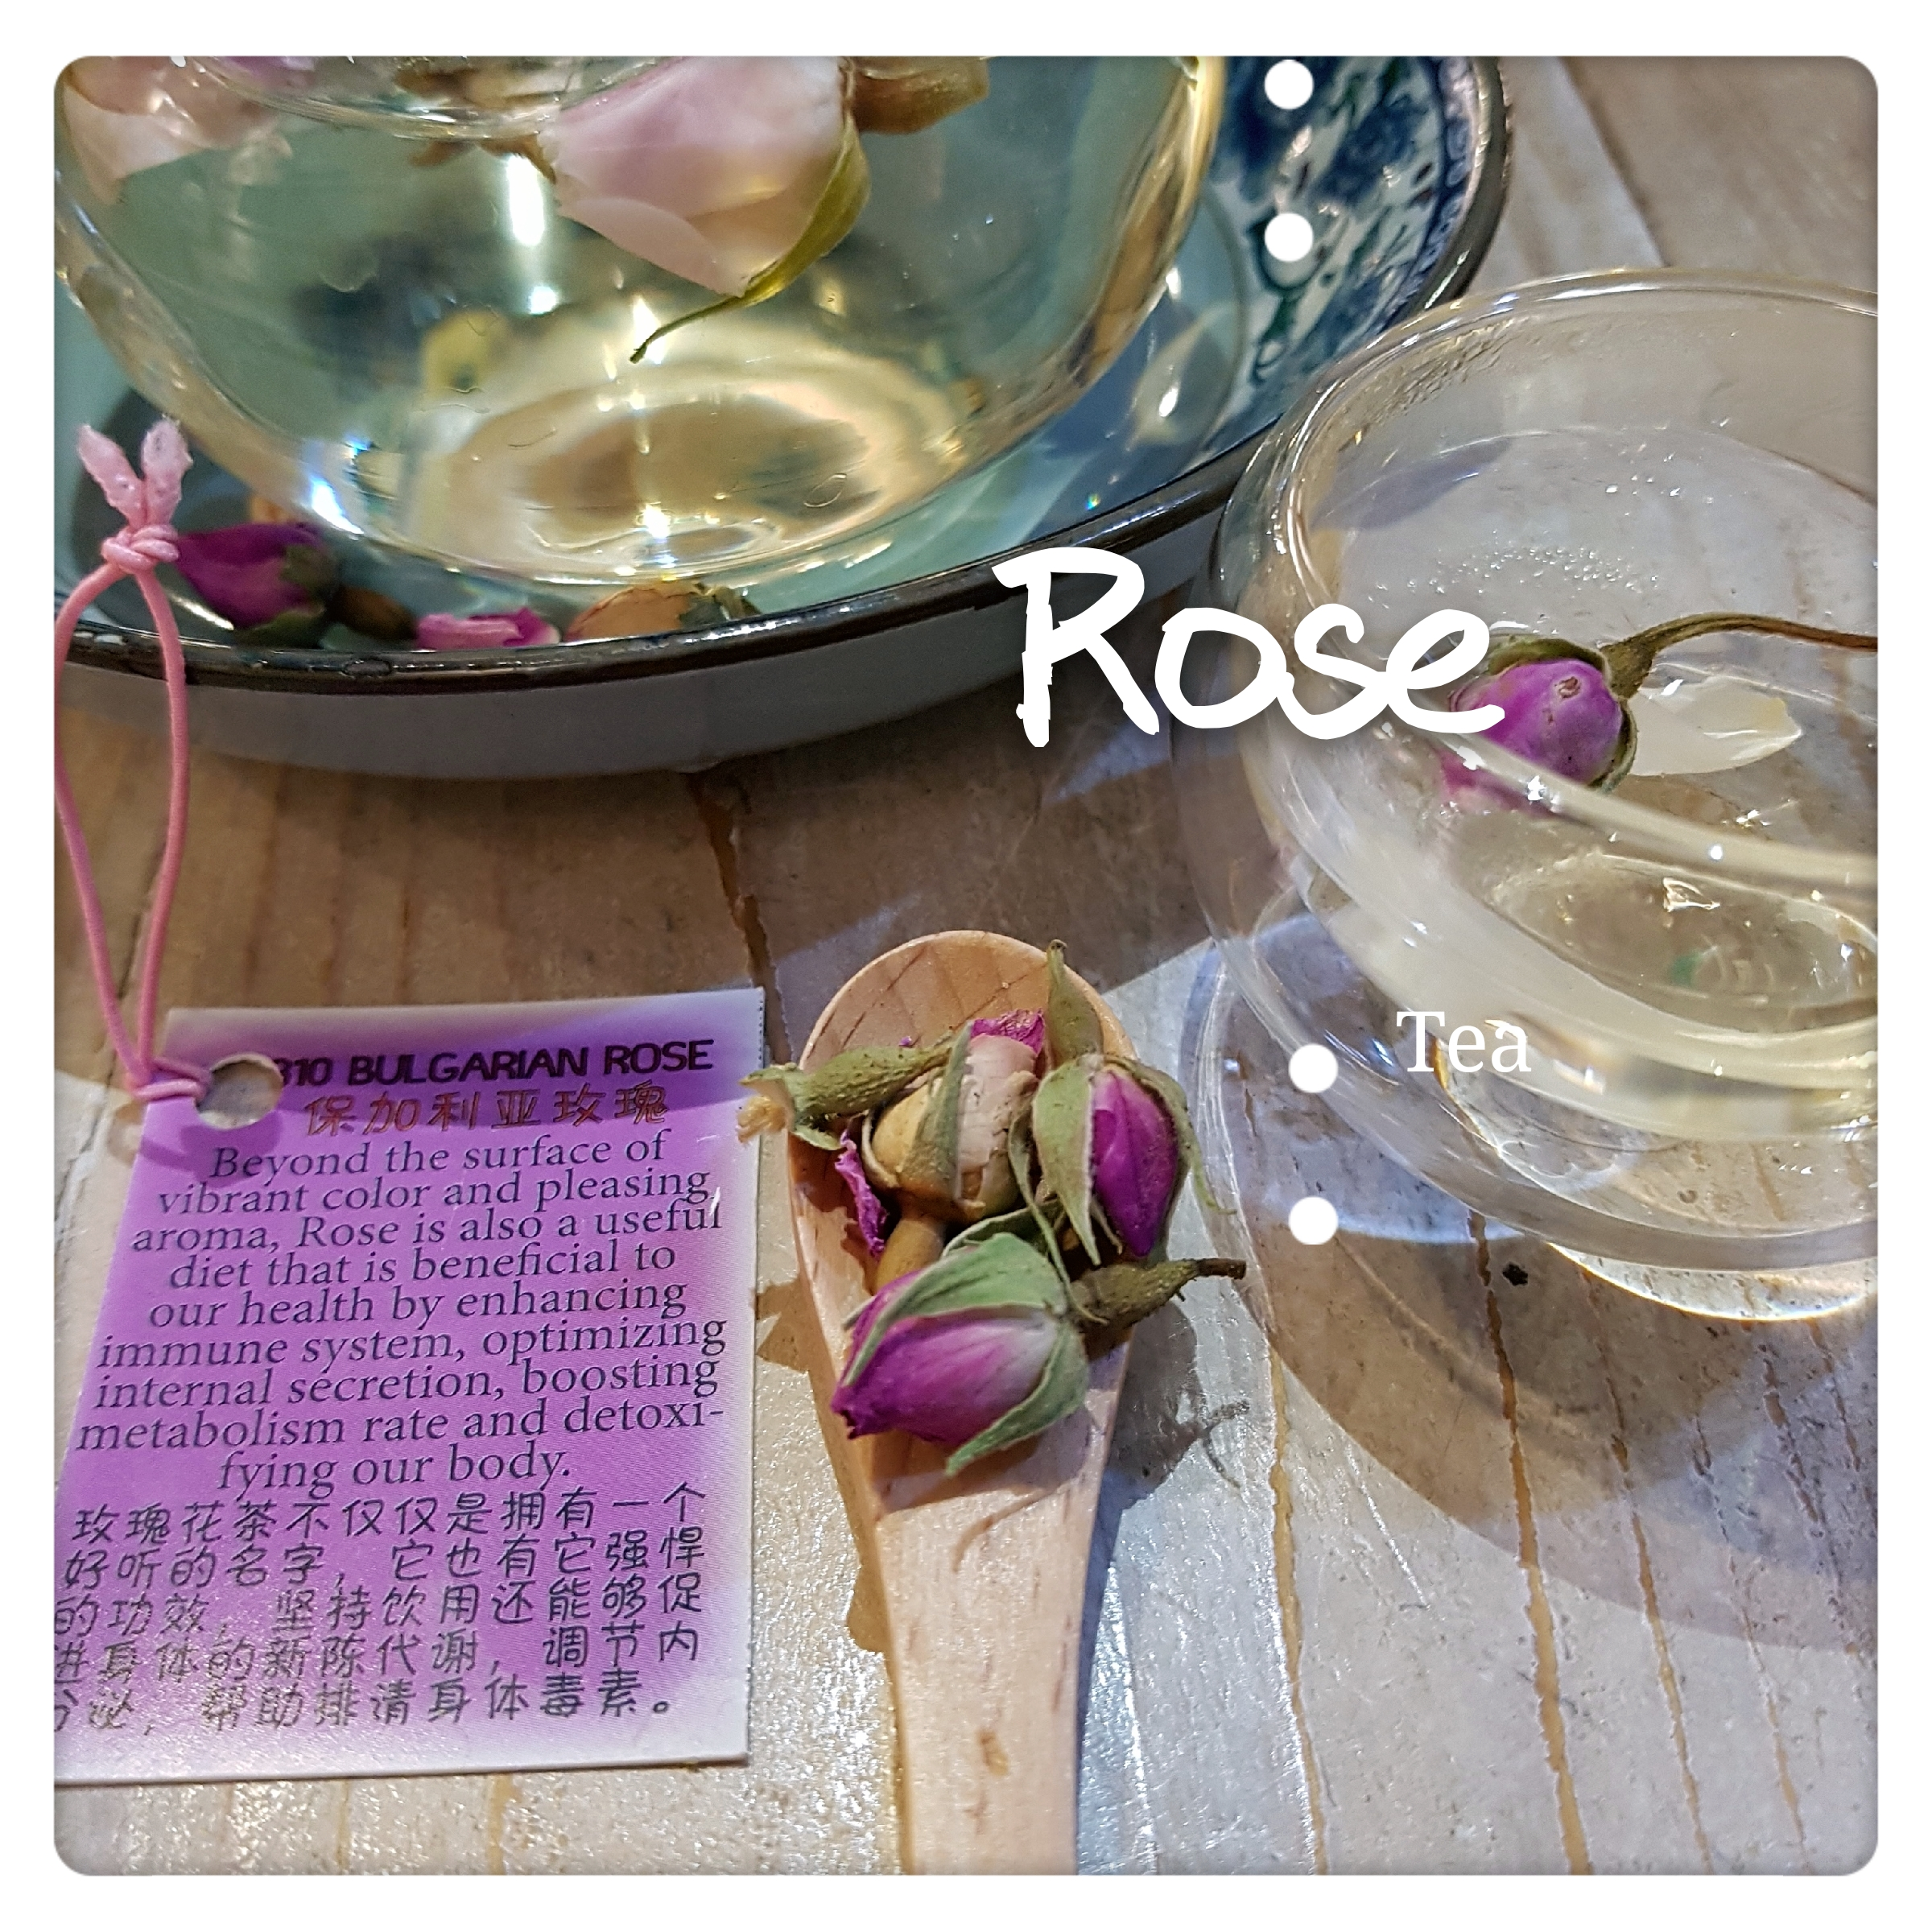 Noodle Shack Rose Tea.jpg